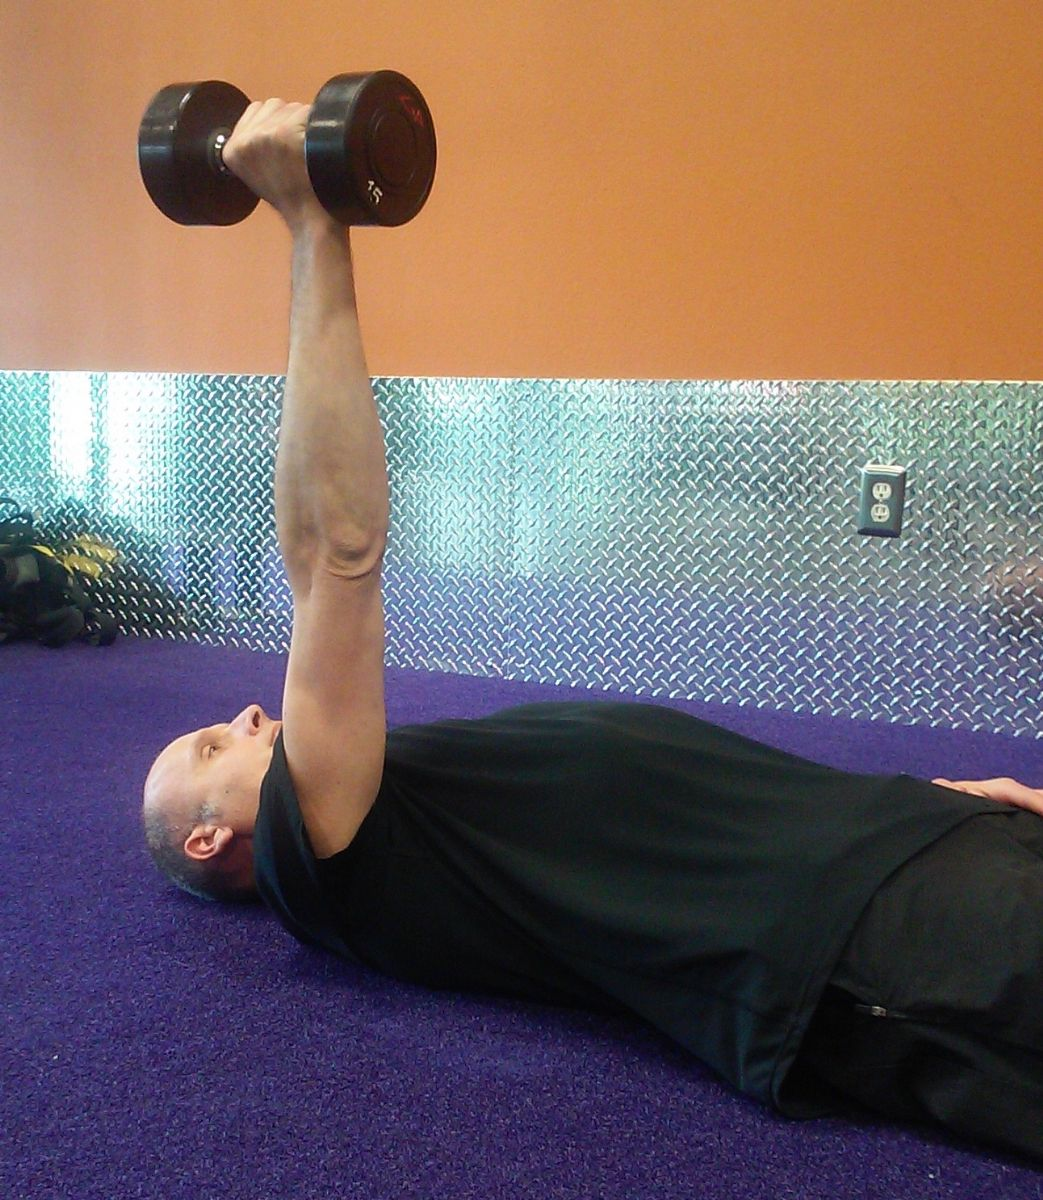 Exercise Of The Week Dumbbell Floor Press: 10 Effective Exercises You Can Do With A Single Dumbbell